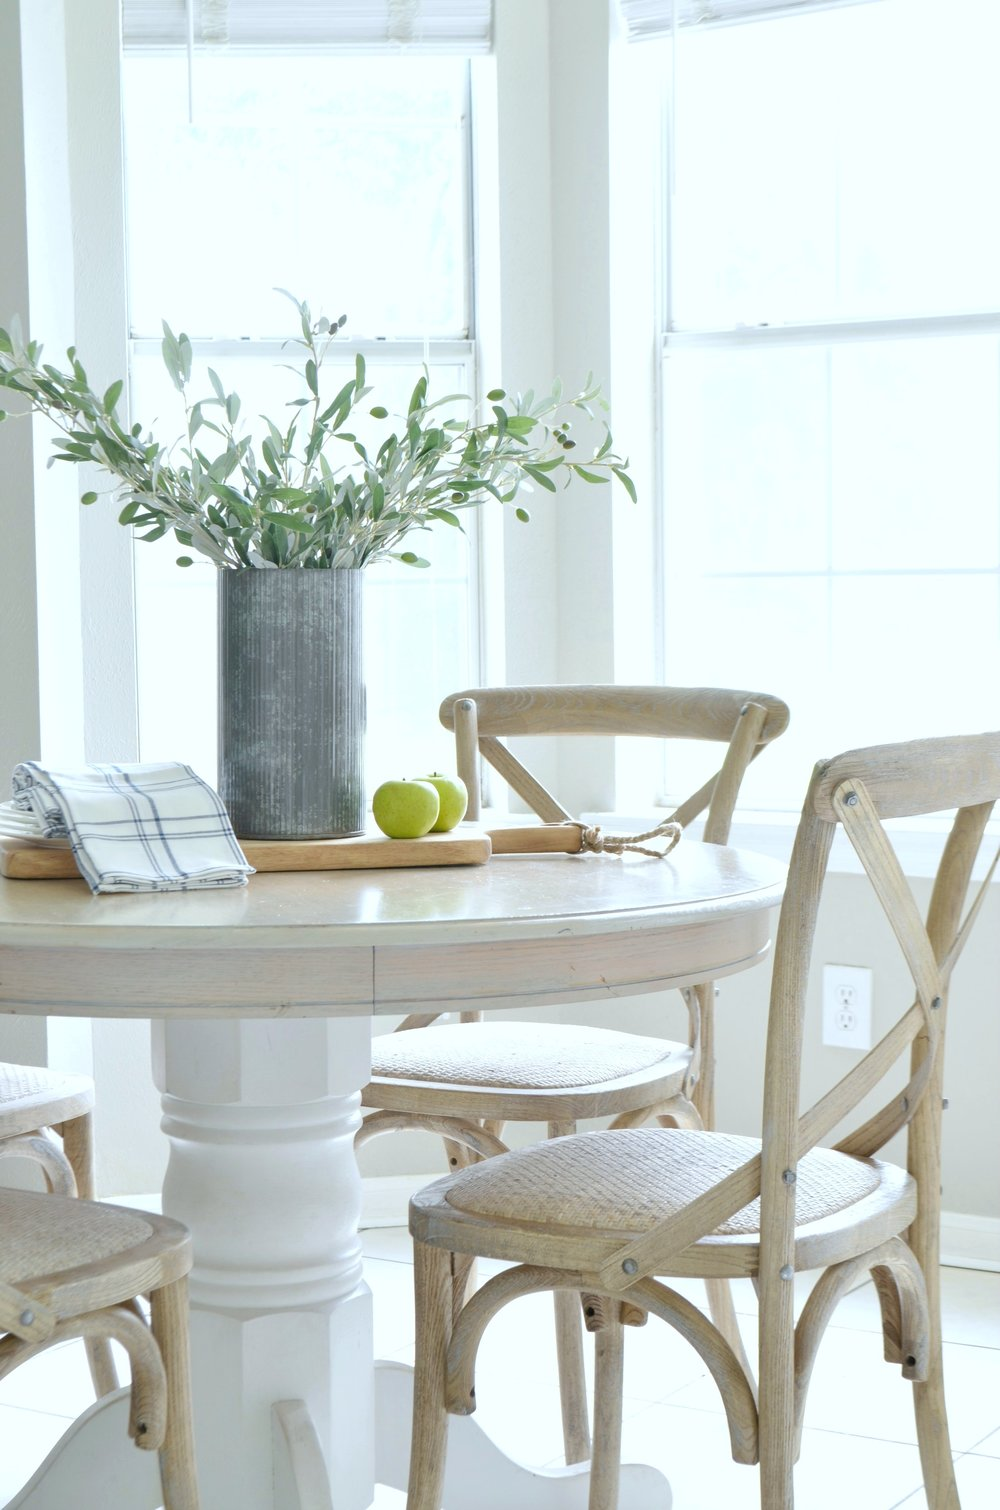 Farmhouse-style dining chairs give the breakfast nook an instant facelift.